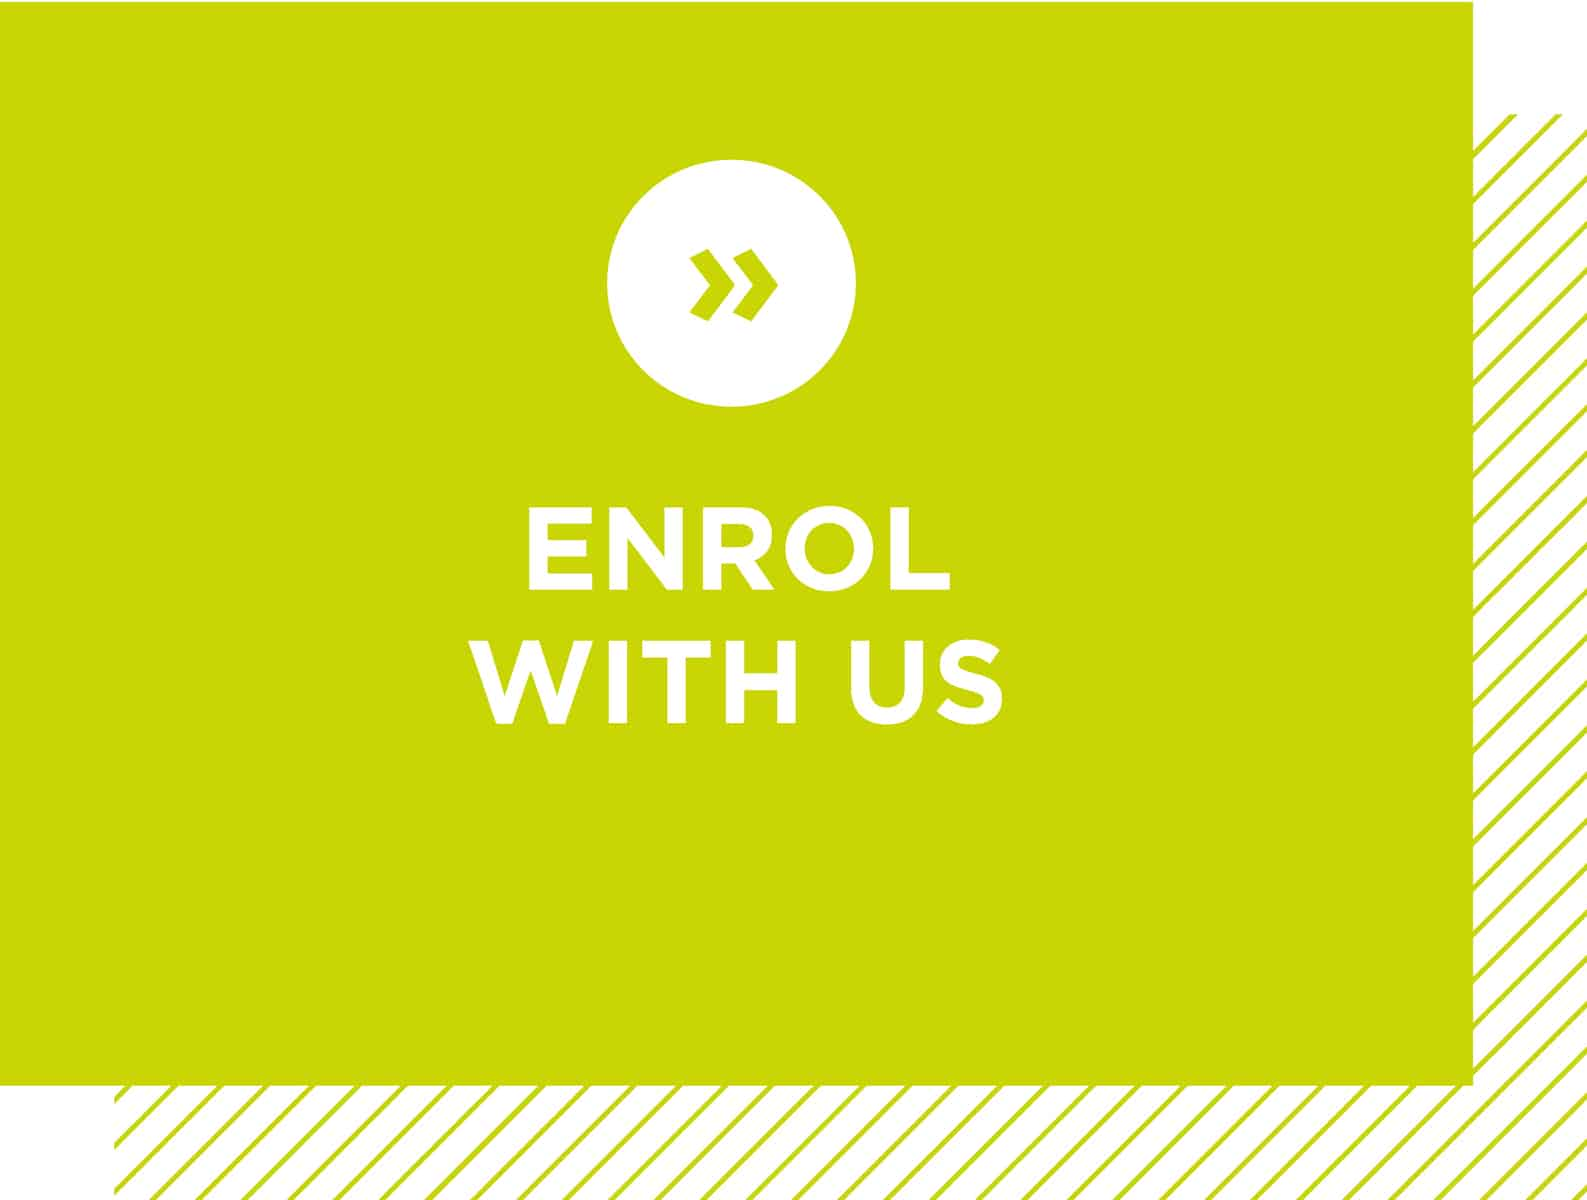 Enrol with us